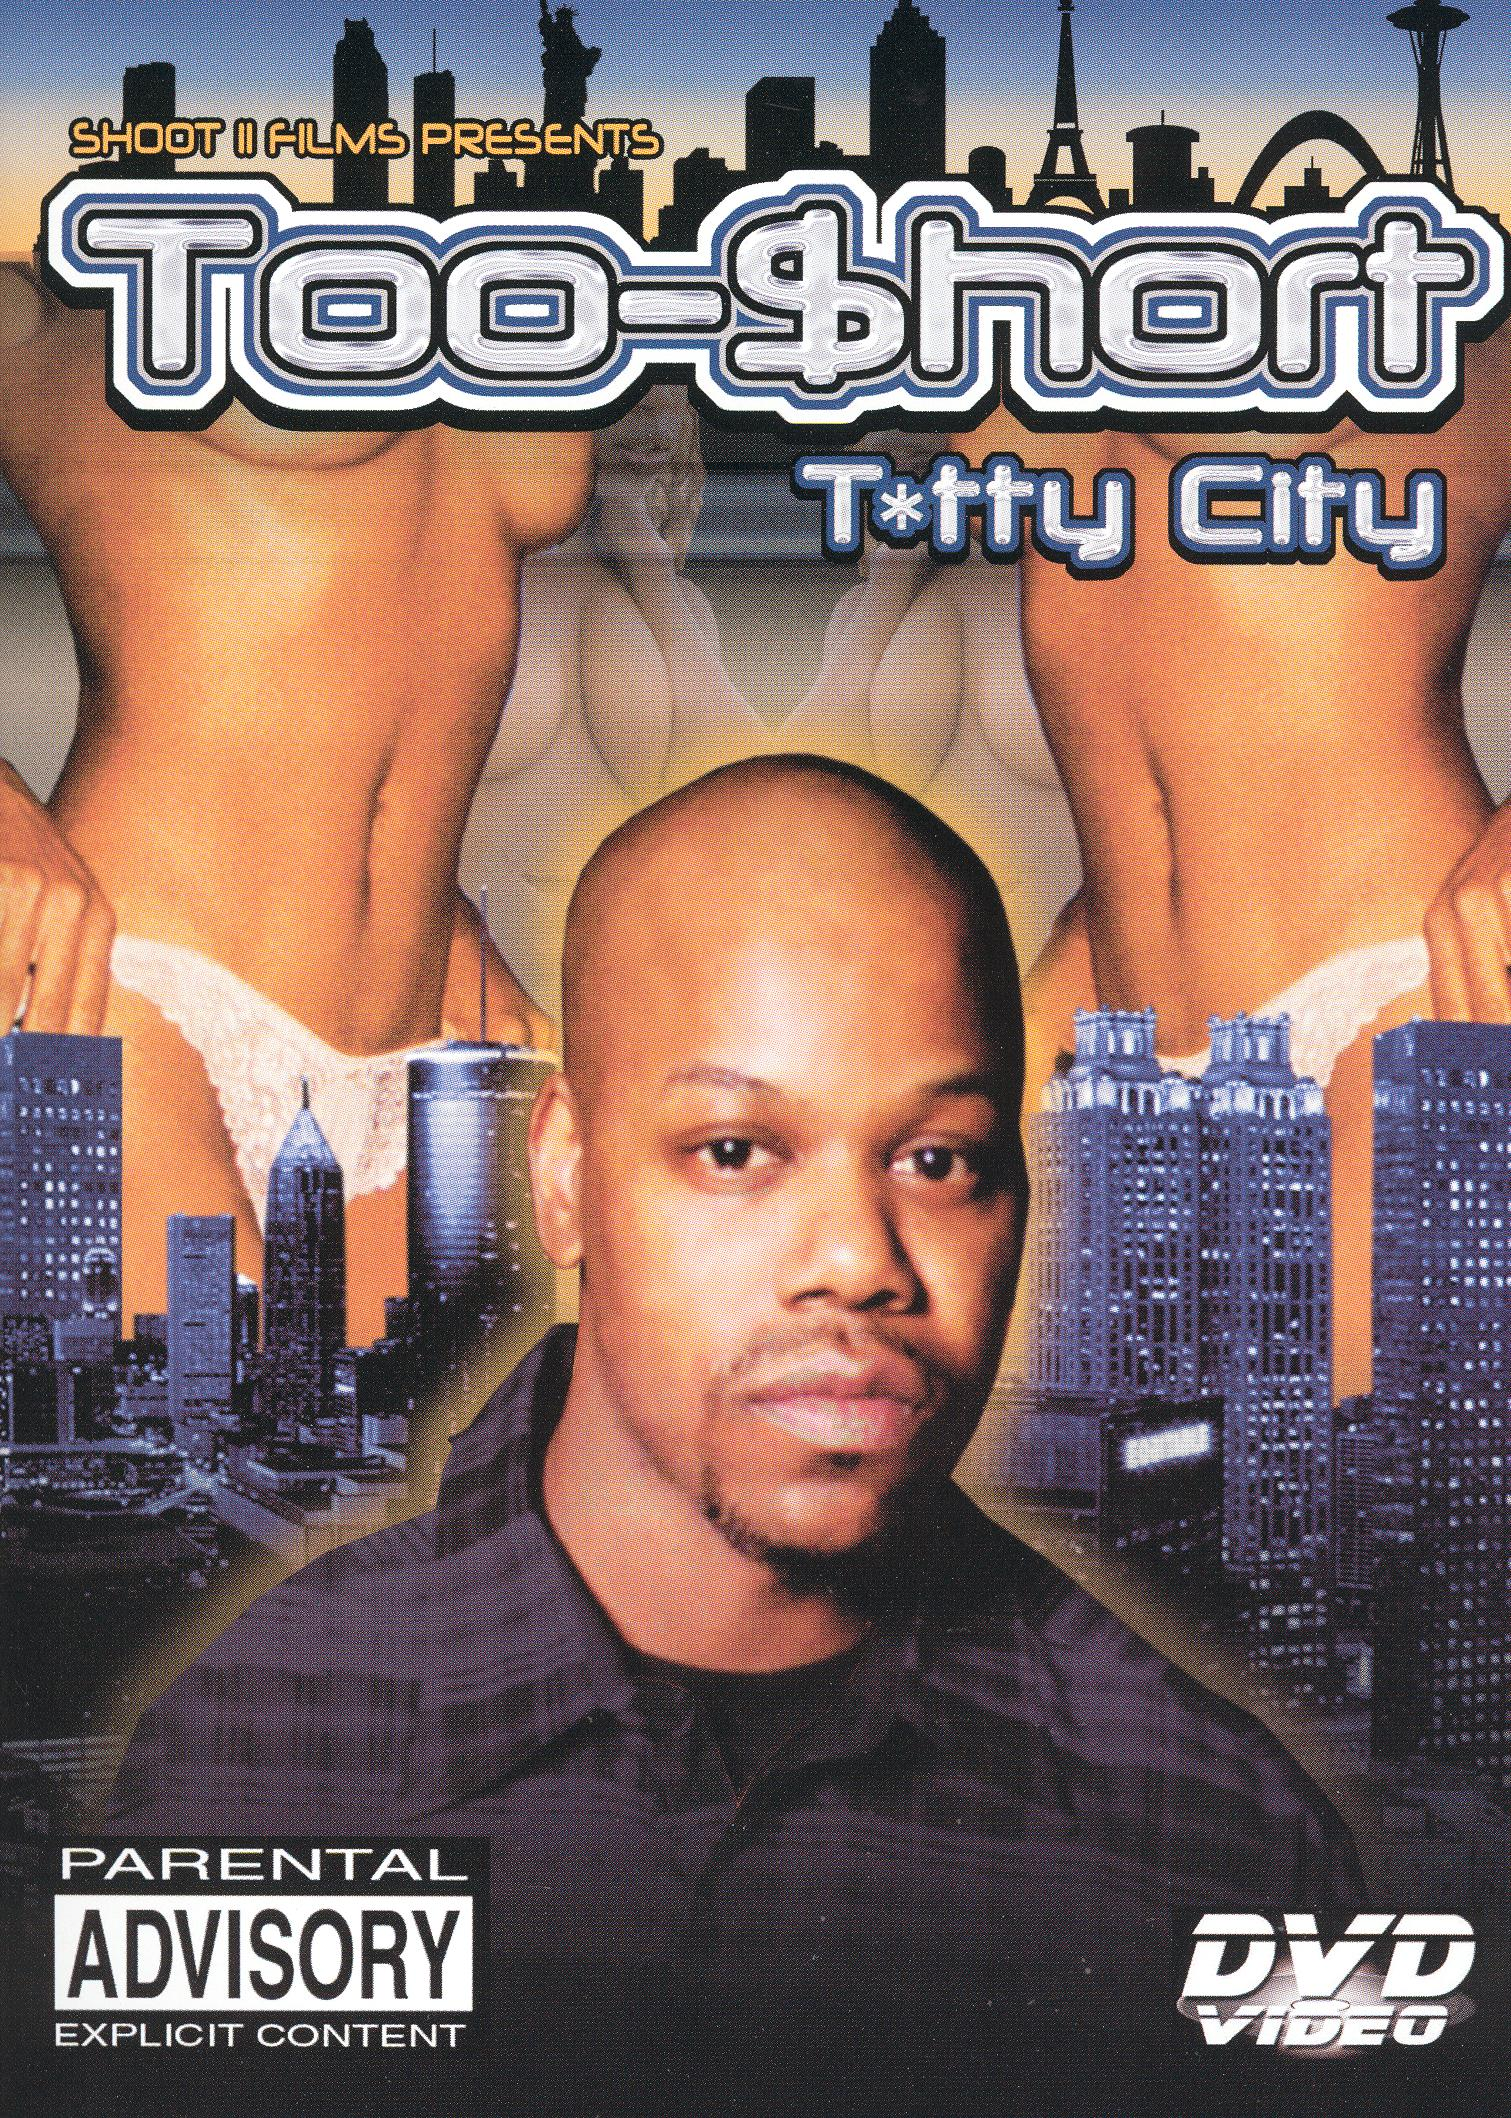 Too $hort: Titty City